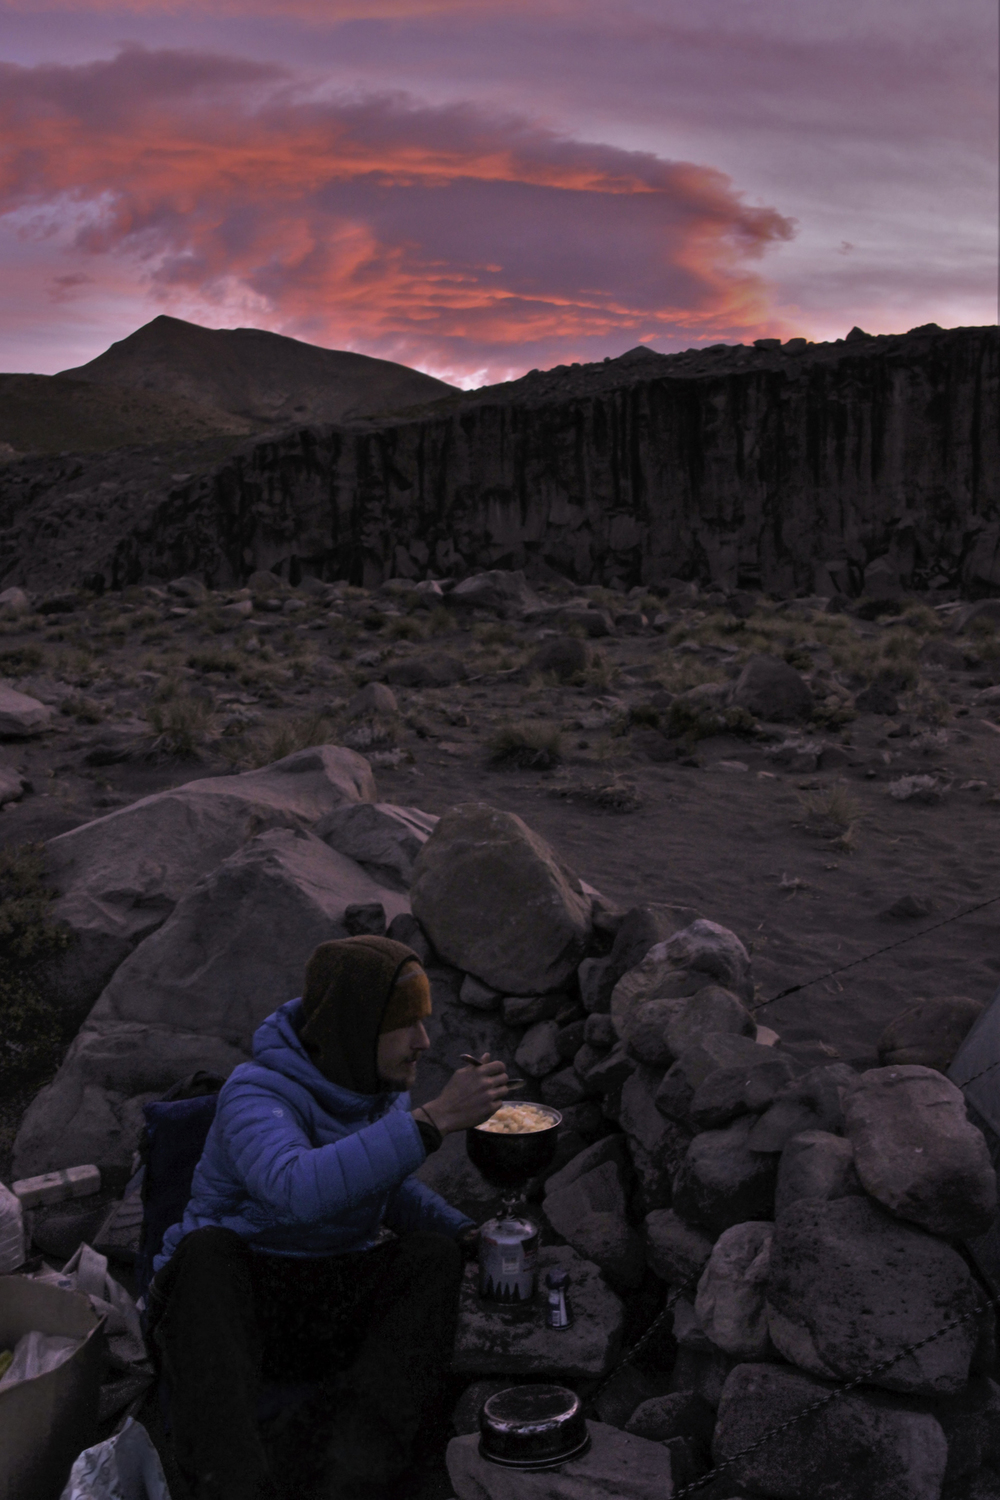 Climbing-In-Chile-Camping-Stove.jpg